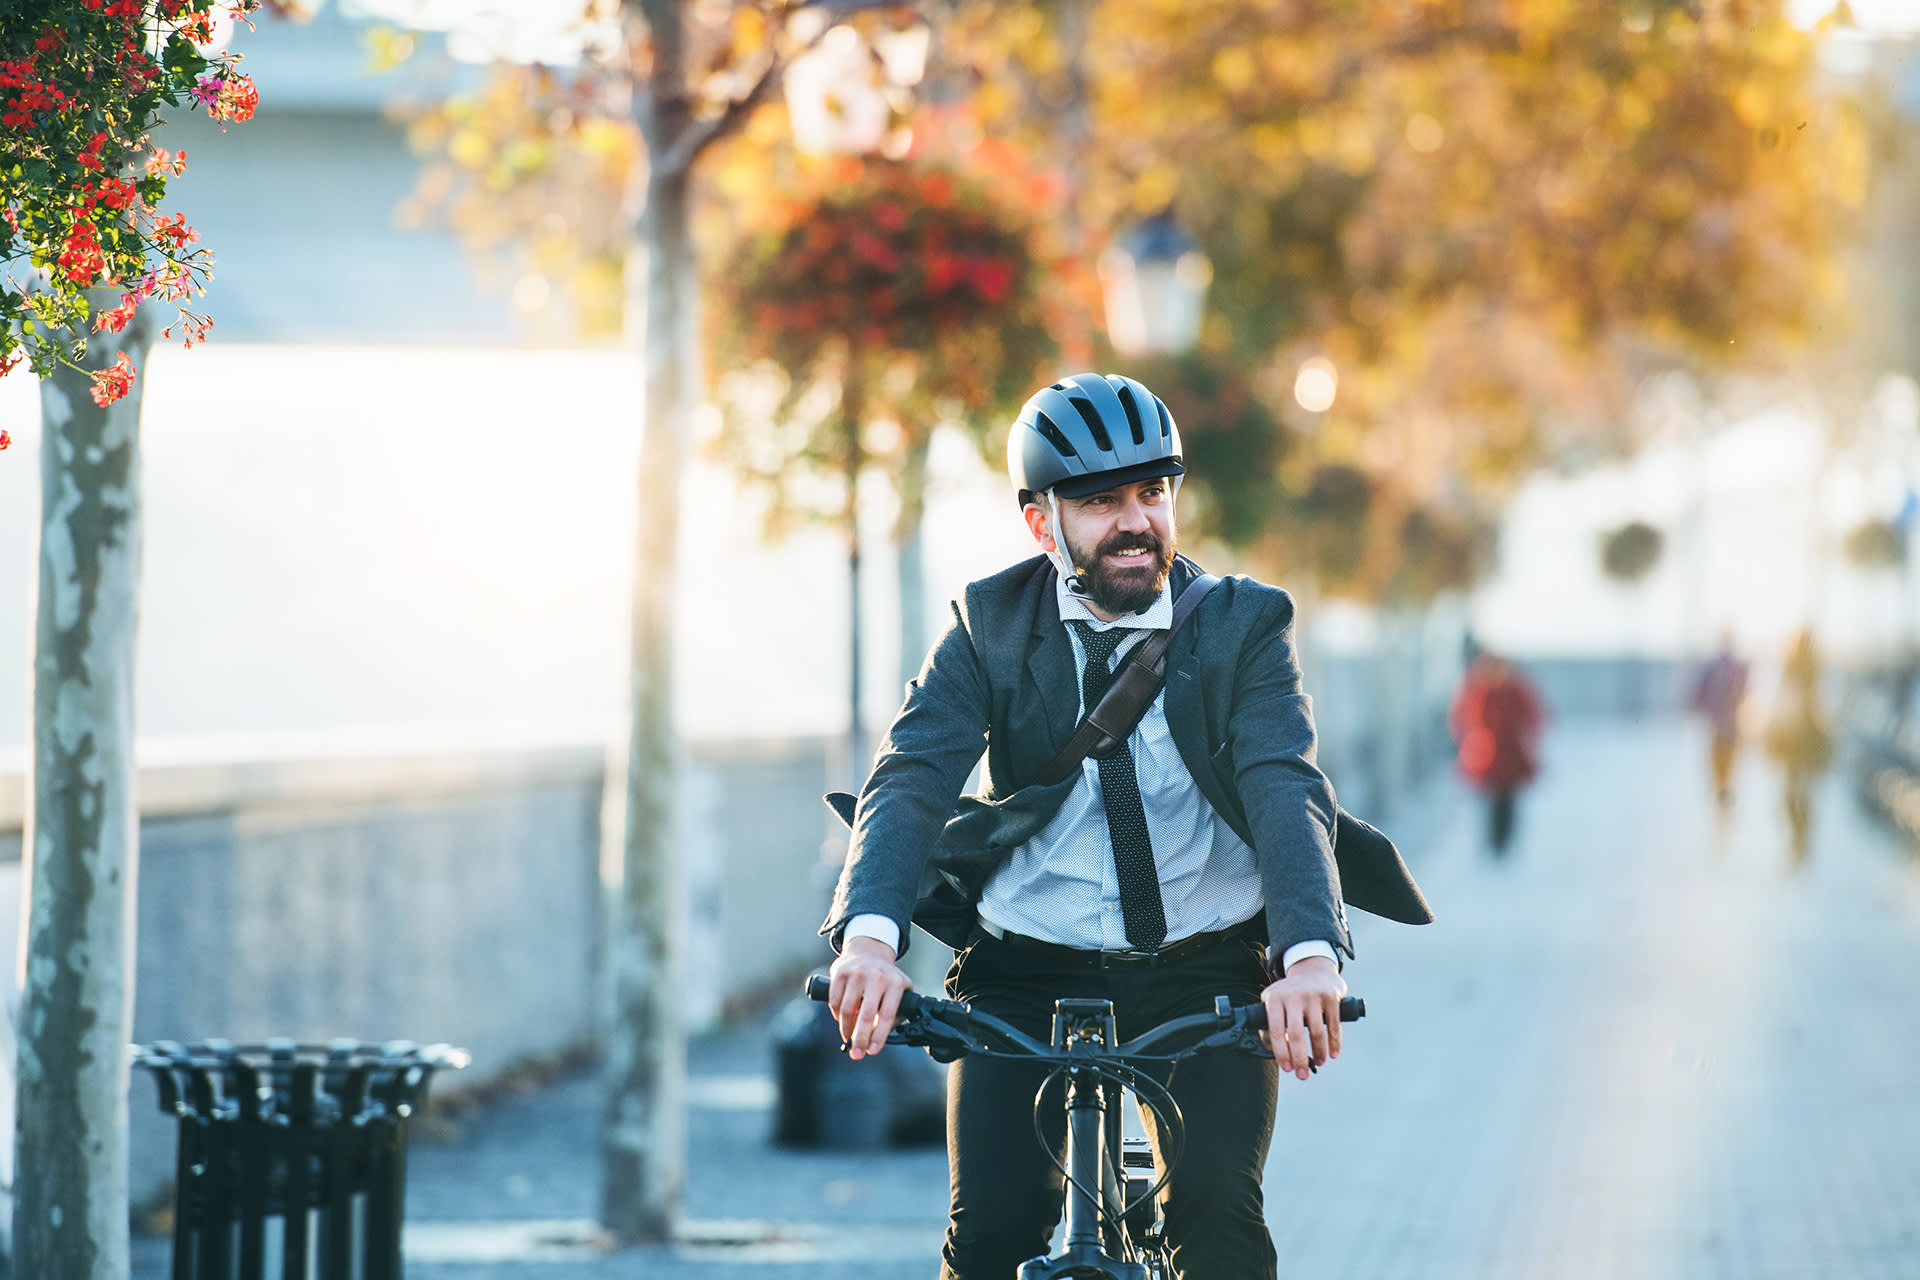 Eccentric Energy - Moving towards a low carbon future with pedal power